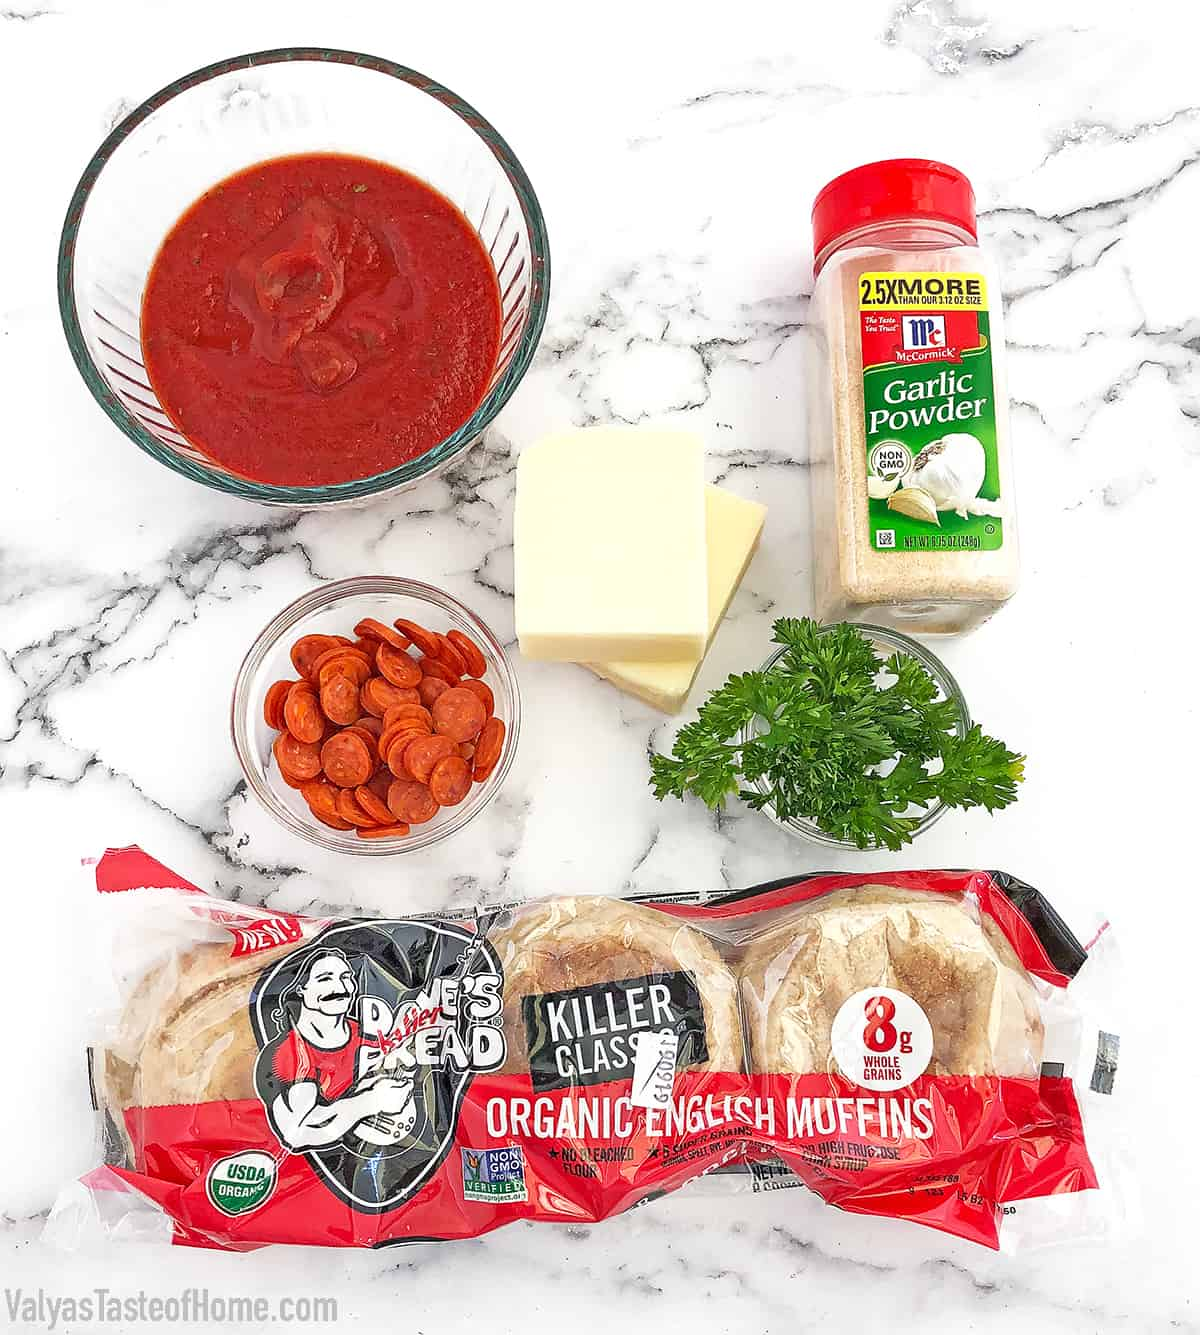 These English Muffin Mini Pepperoni Pizzas is a great project for the kiddos. It takes just a few basic ingredients, but the little ones love making them. They feel like they cooked their own pizza! #cookingwithkids #minipizzas #englishmuffinminipizzas #valyastateofhome